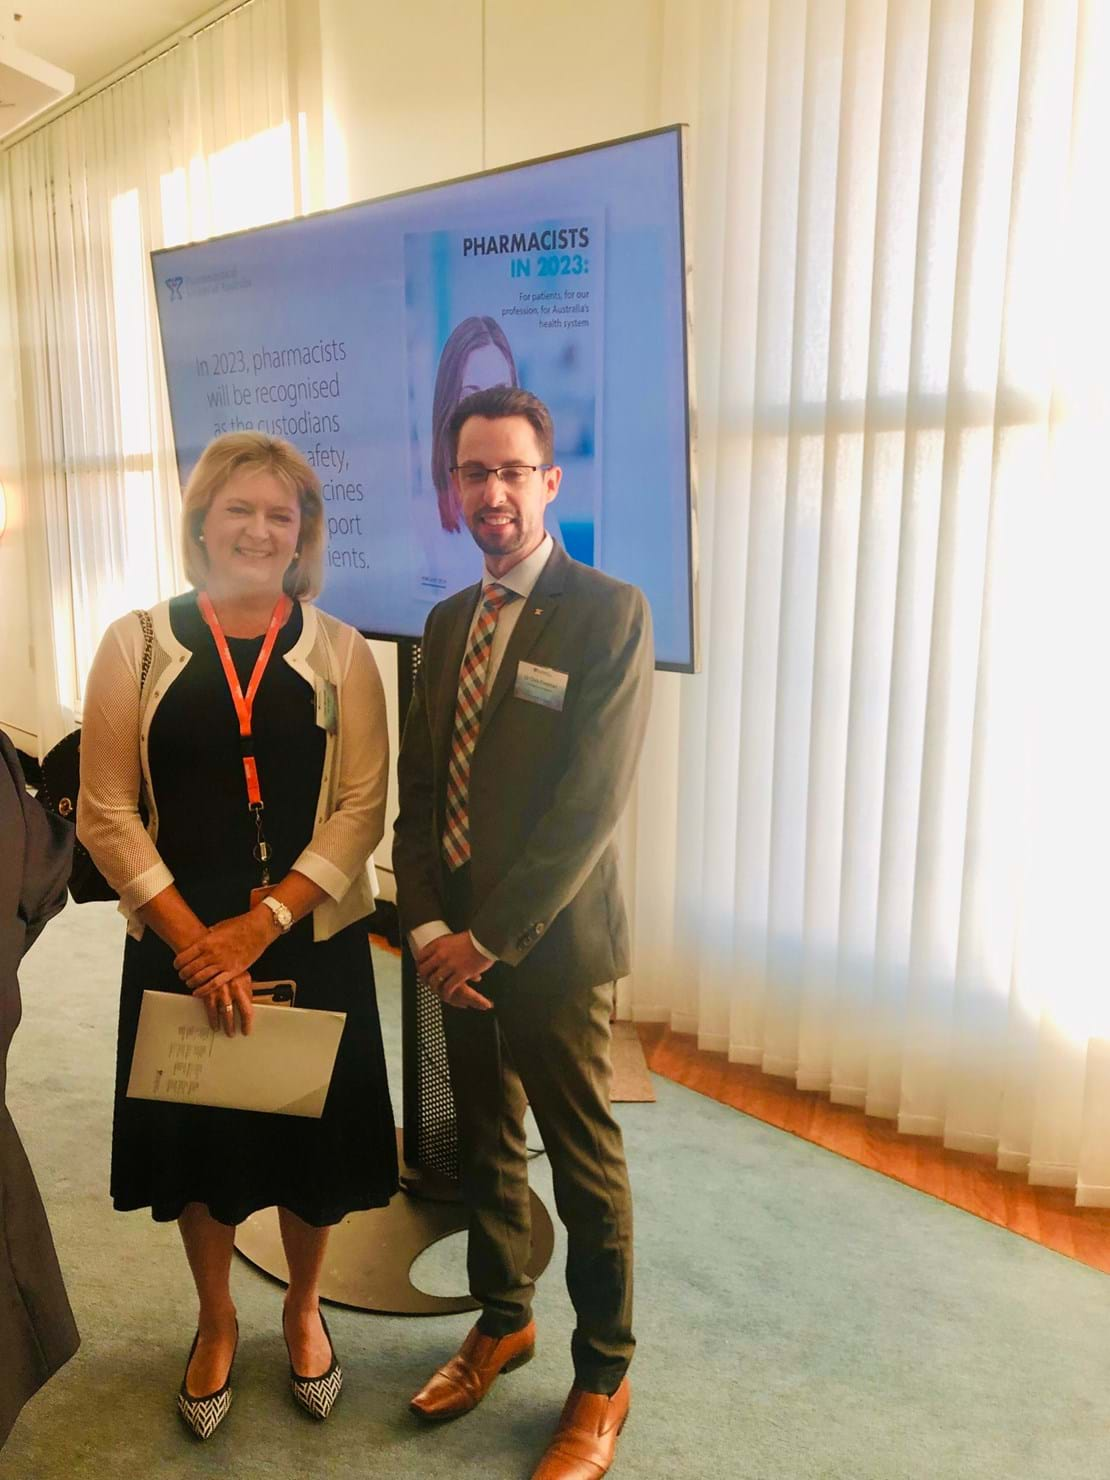 Painaustralia CEO, Carol Bennett and Chris Freeman and Pharmacists in the Future launch